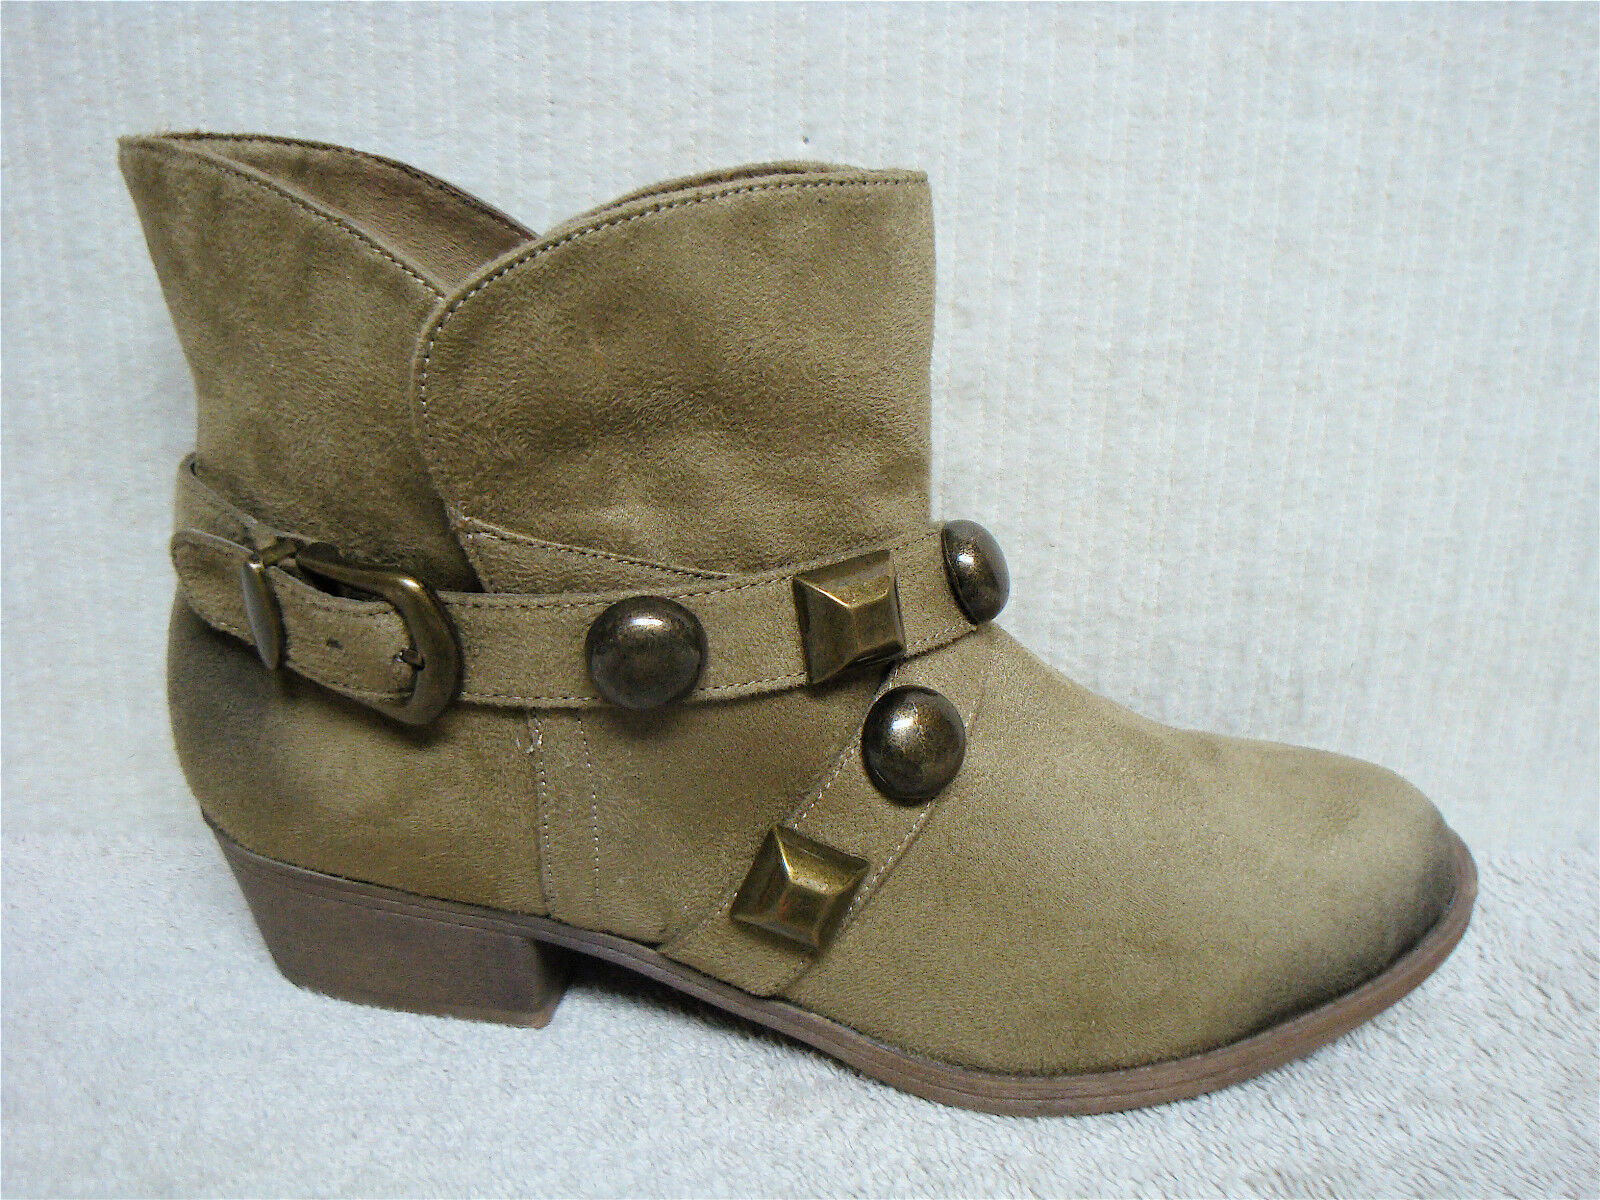 KENSIE GIRL - EMMY - Women's Short Ankle Boots -Taupe Patent Leather -Size 8.5 M